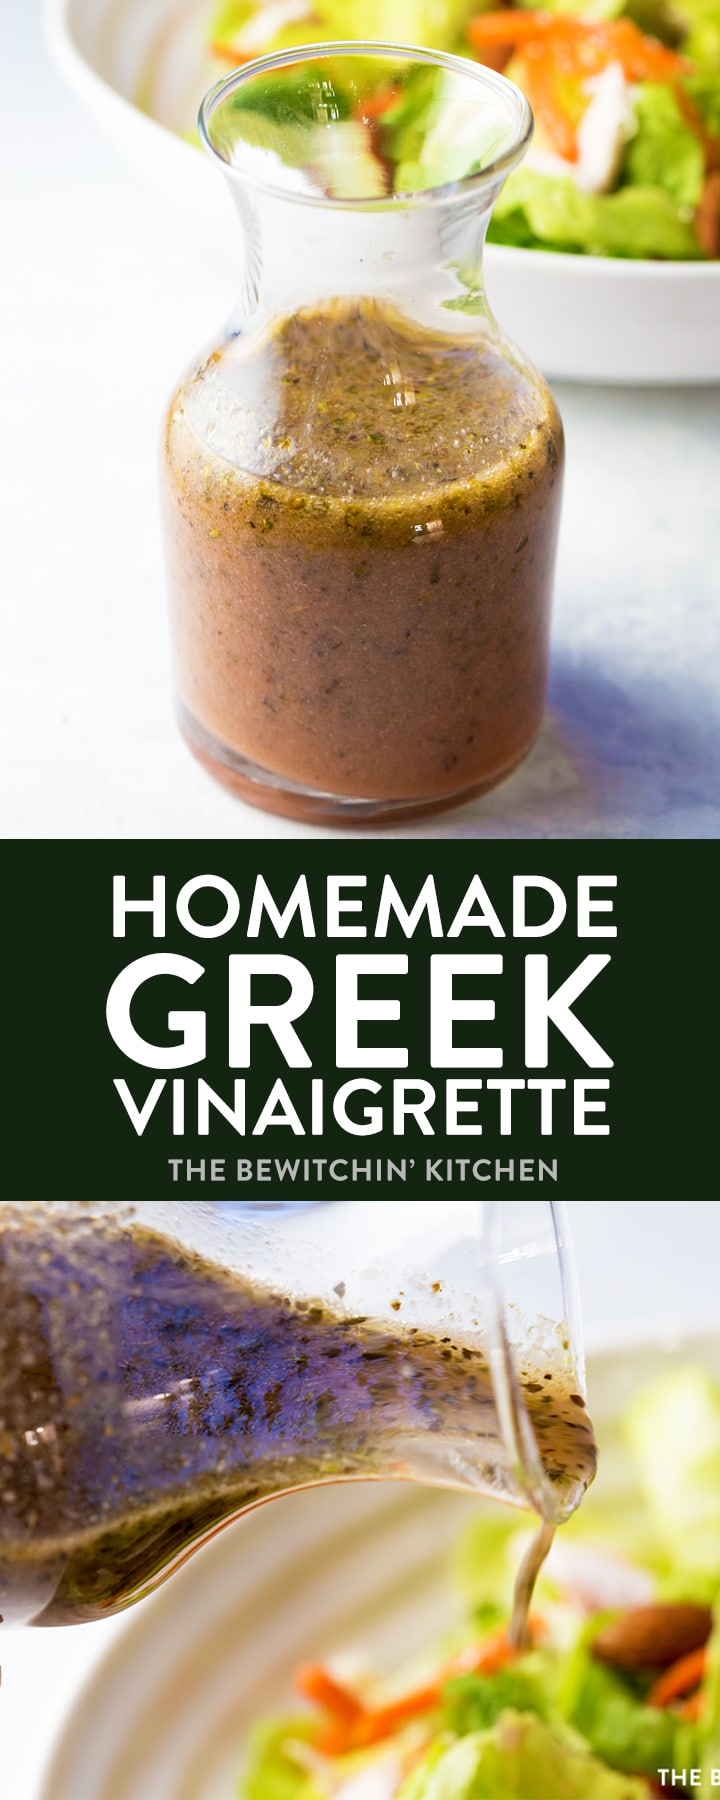 Homemade Greek Vinaigrette. This homemade salad dressing is delicious over salads or as a marinade for chicken or steak! This healthy recipe packs a clean eating punch which is approved for 21 Day Fix, 80 Day Obsession, and other Beachbody programs! Weight loss recipes made tasty! #greekvinaigrette #greekdressing #homemadesaladdressing #21dayfixrecipes #80dayobsessionrecipes